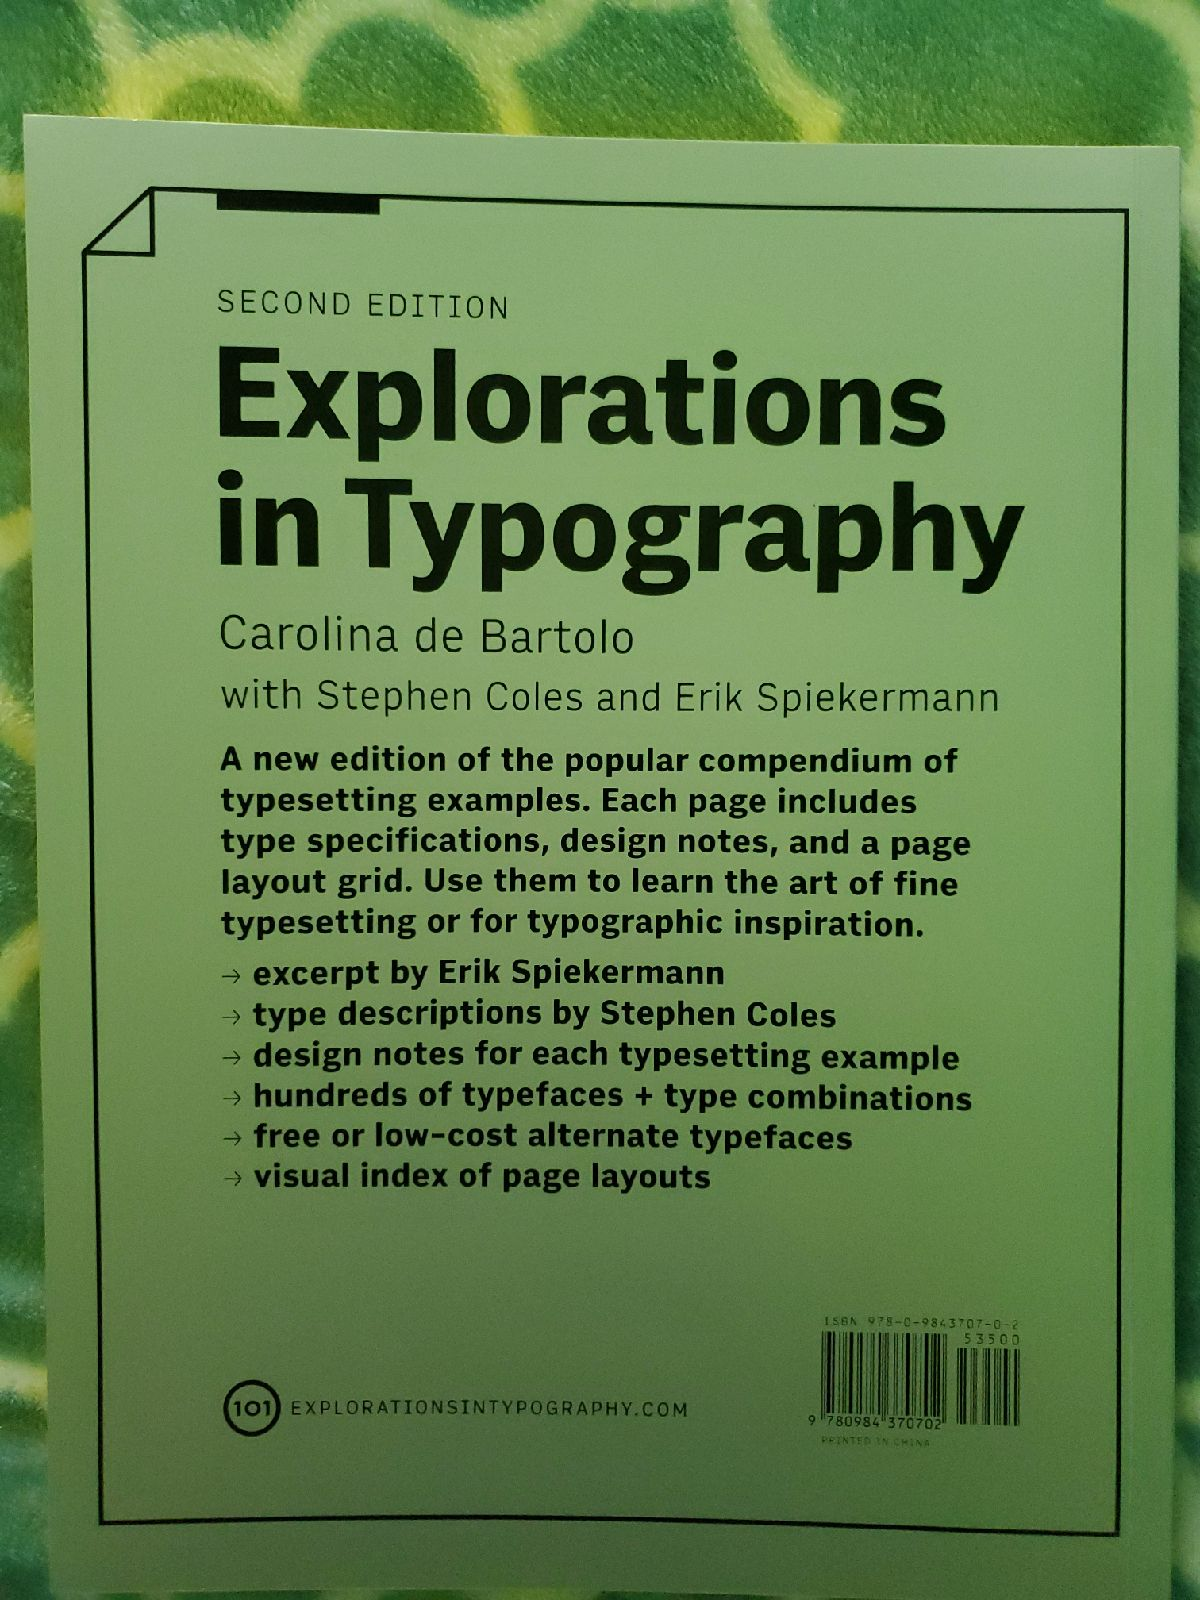 Explorations in Typography - 2nd Edition